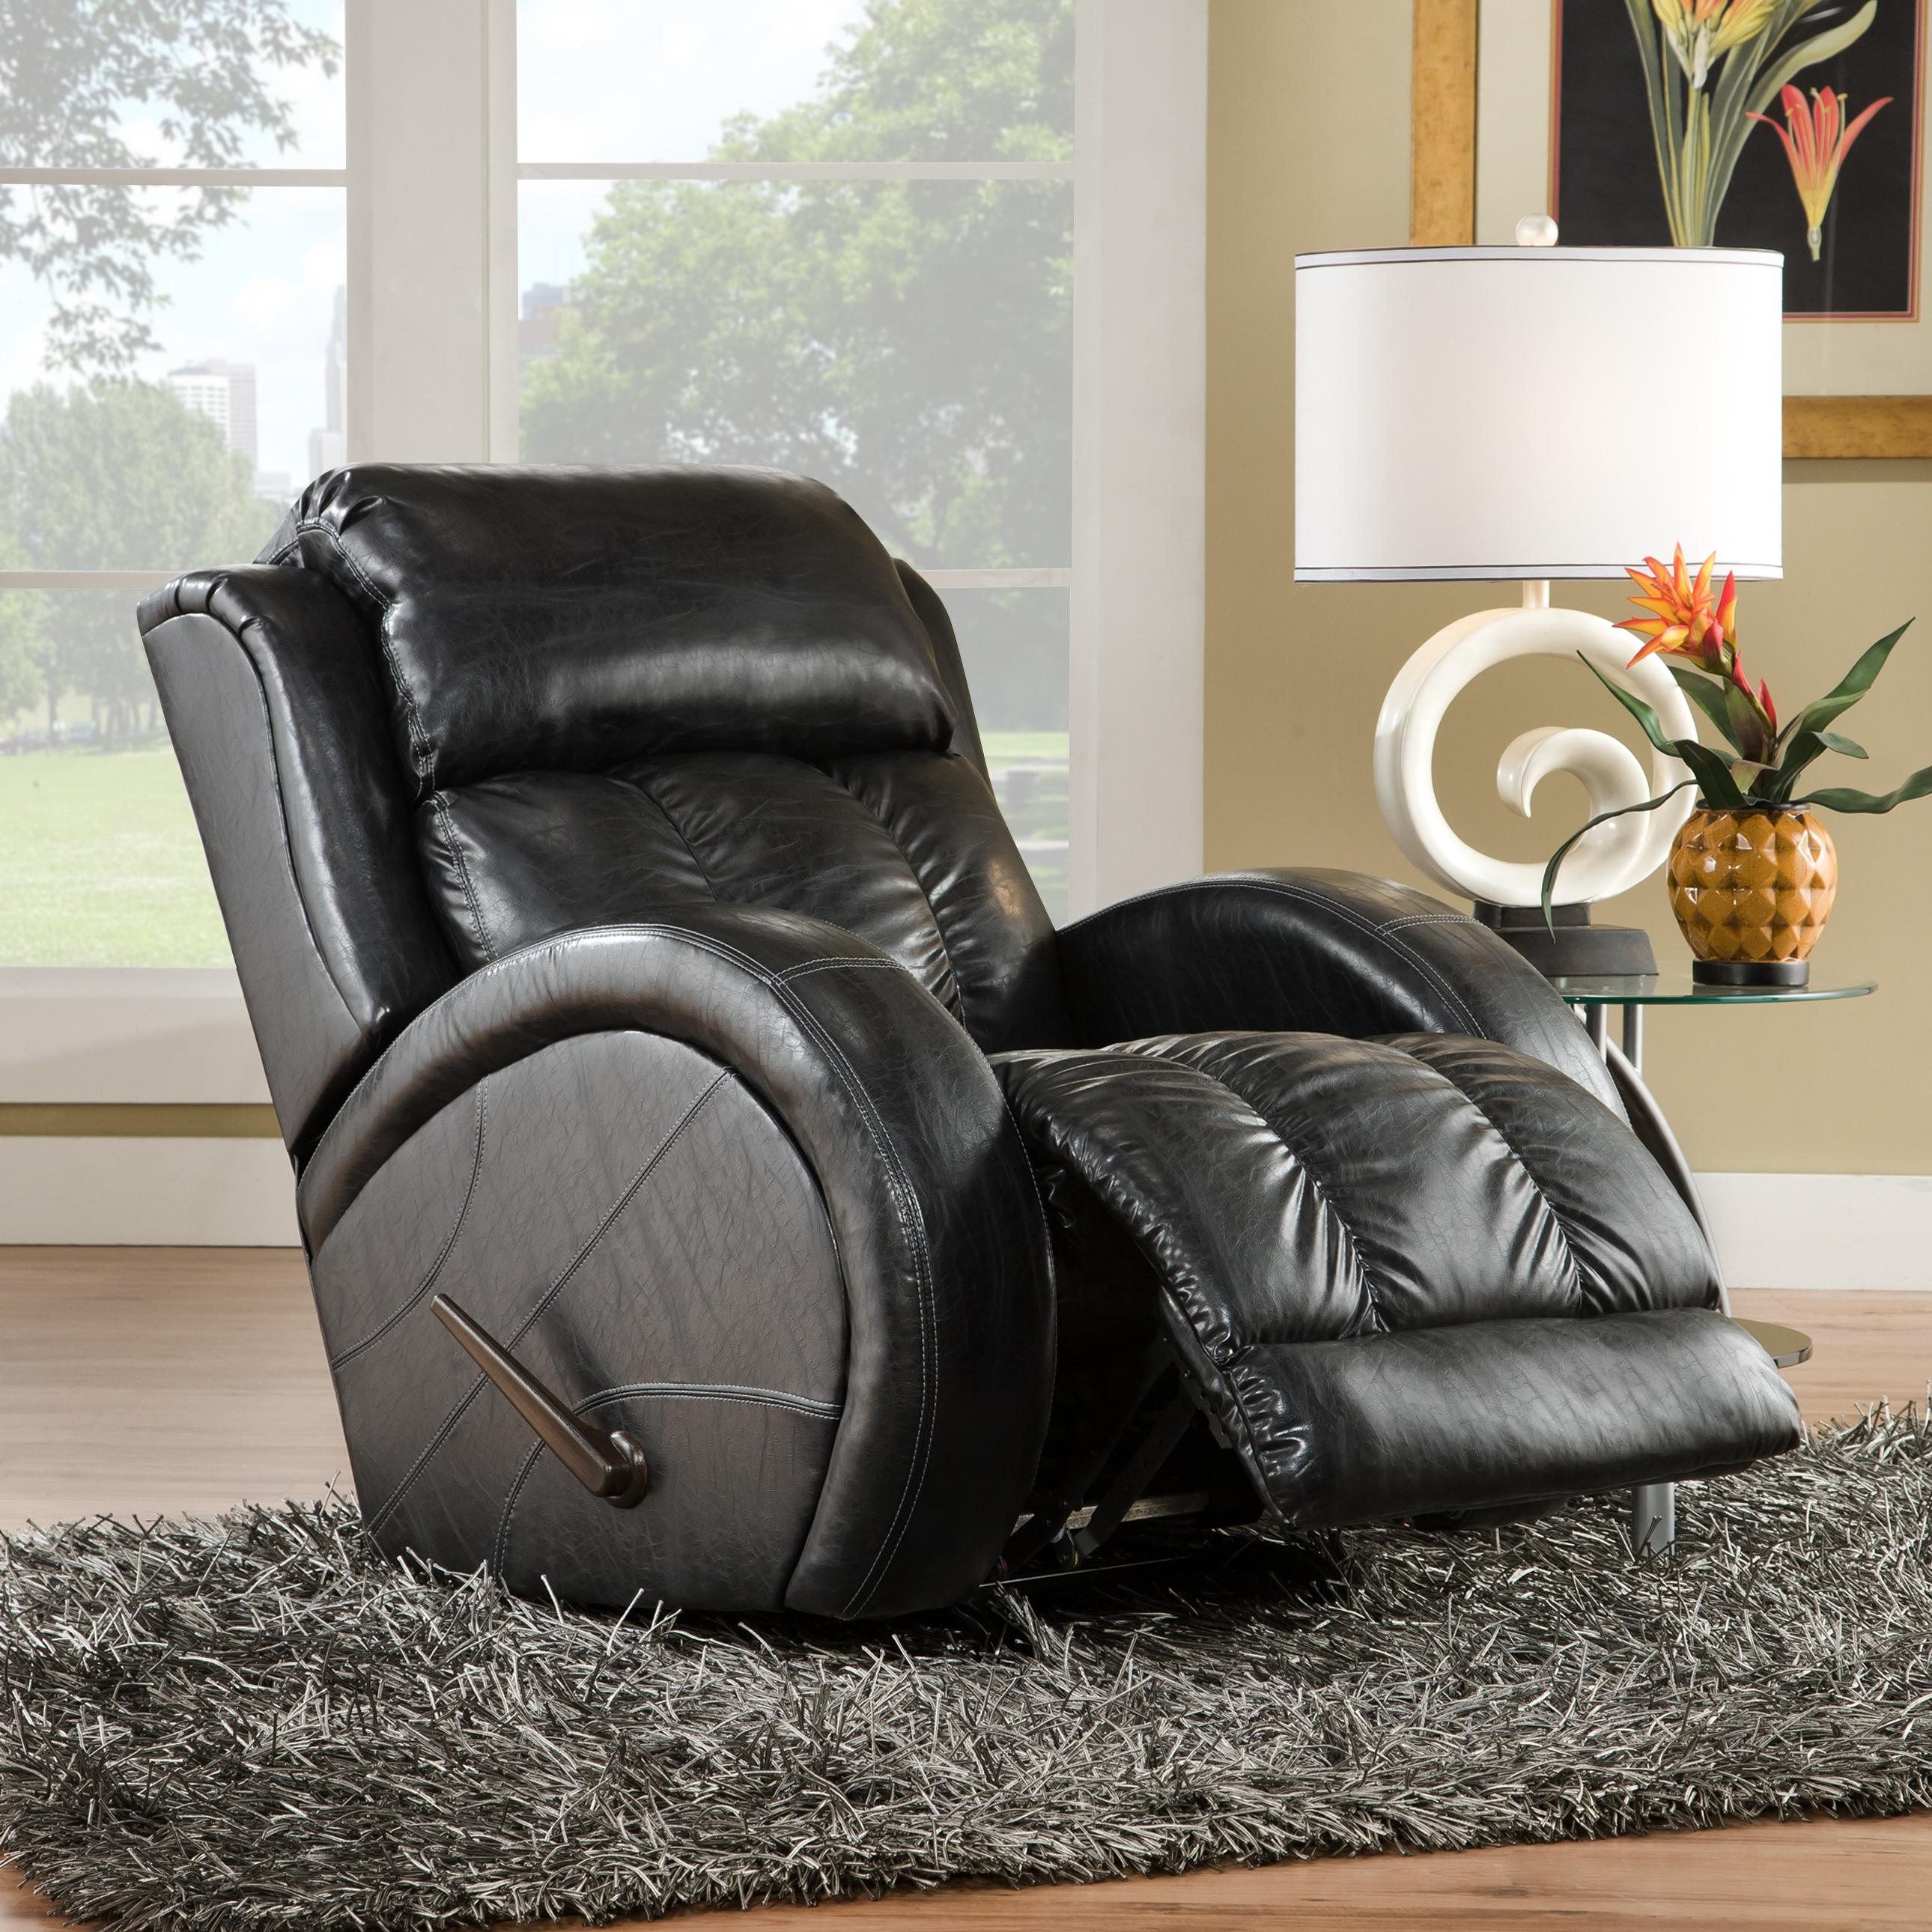 lay seats reclining products recliner chair by sofa with flat wide wolf power furniture catnapper chairs